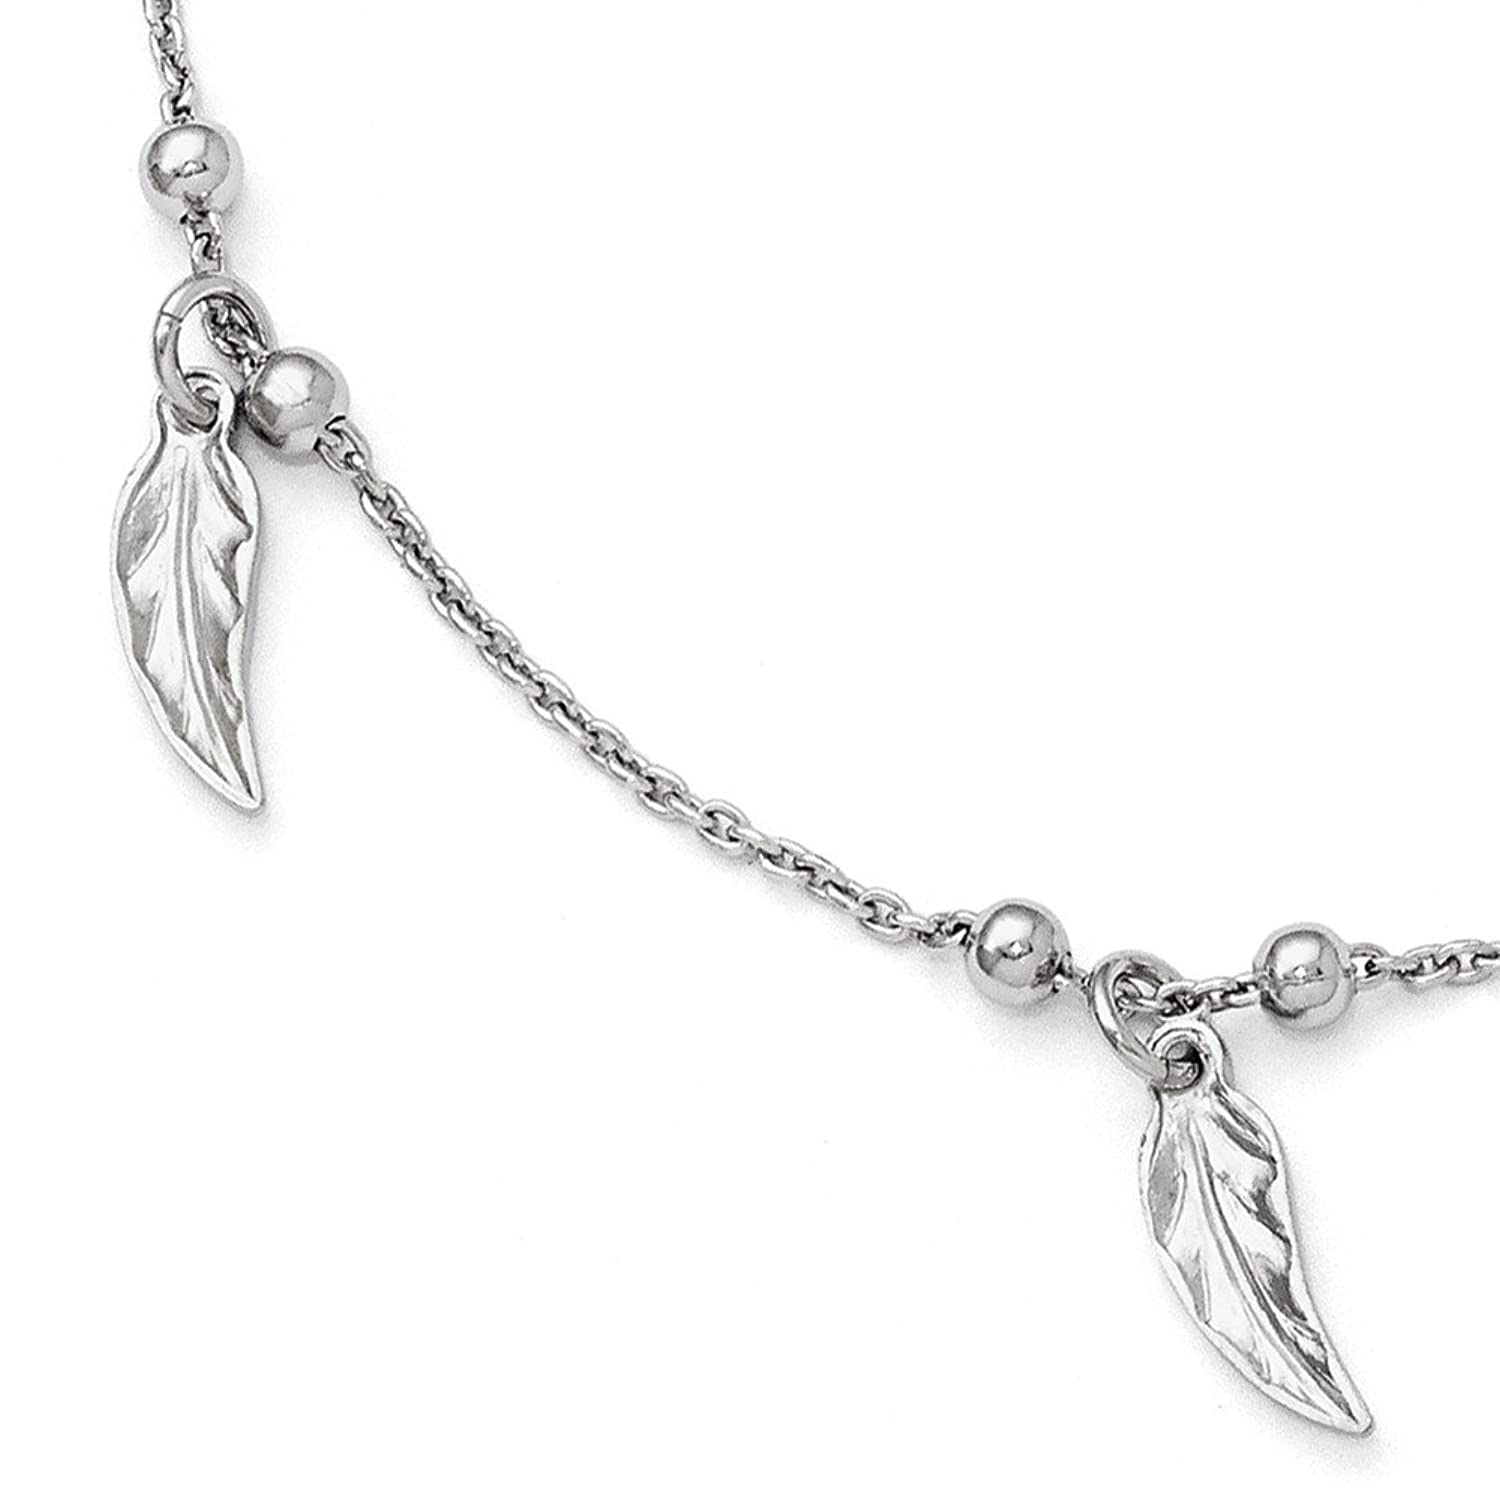 hot Perfect Jewelry Gift Leslie's Sterling Silver Polished Feather Anklet w/1in ext hot sale